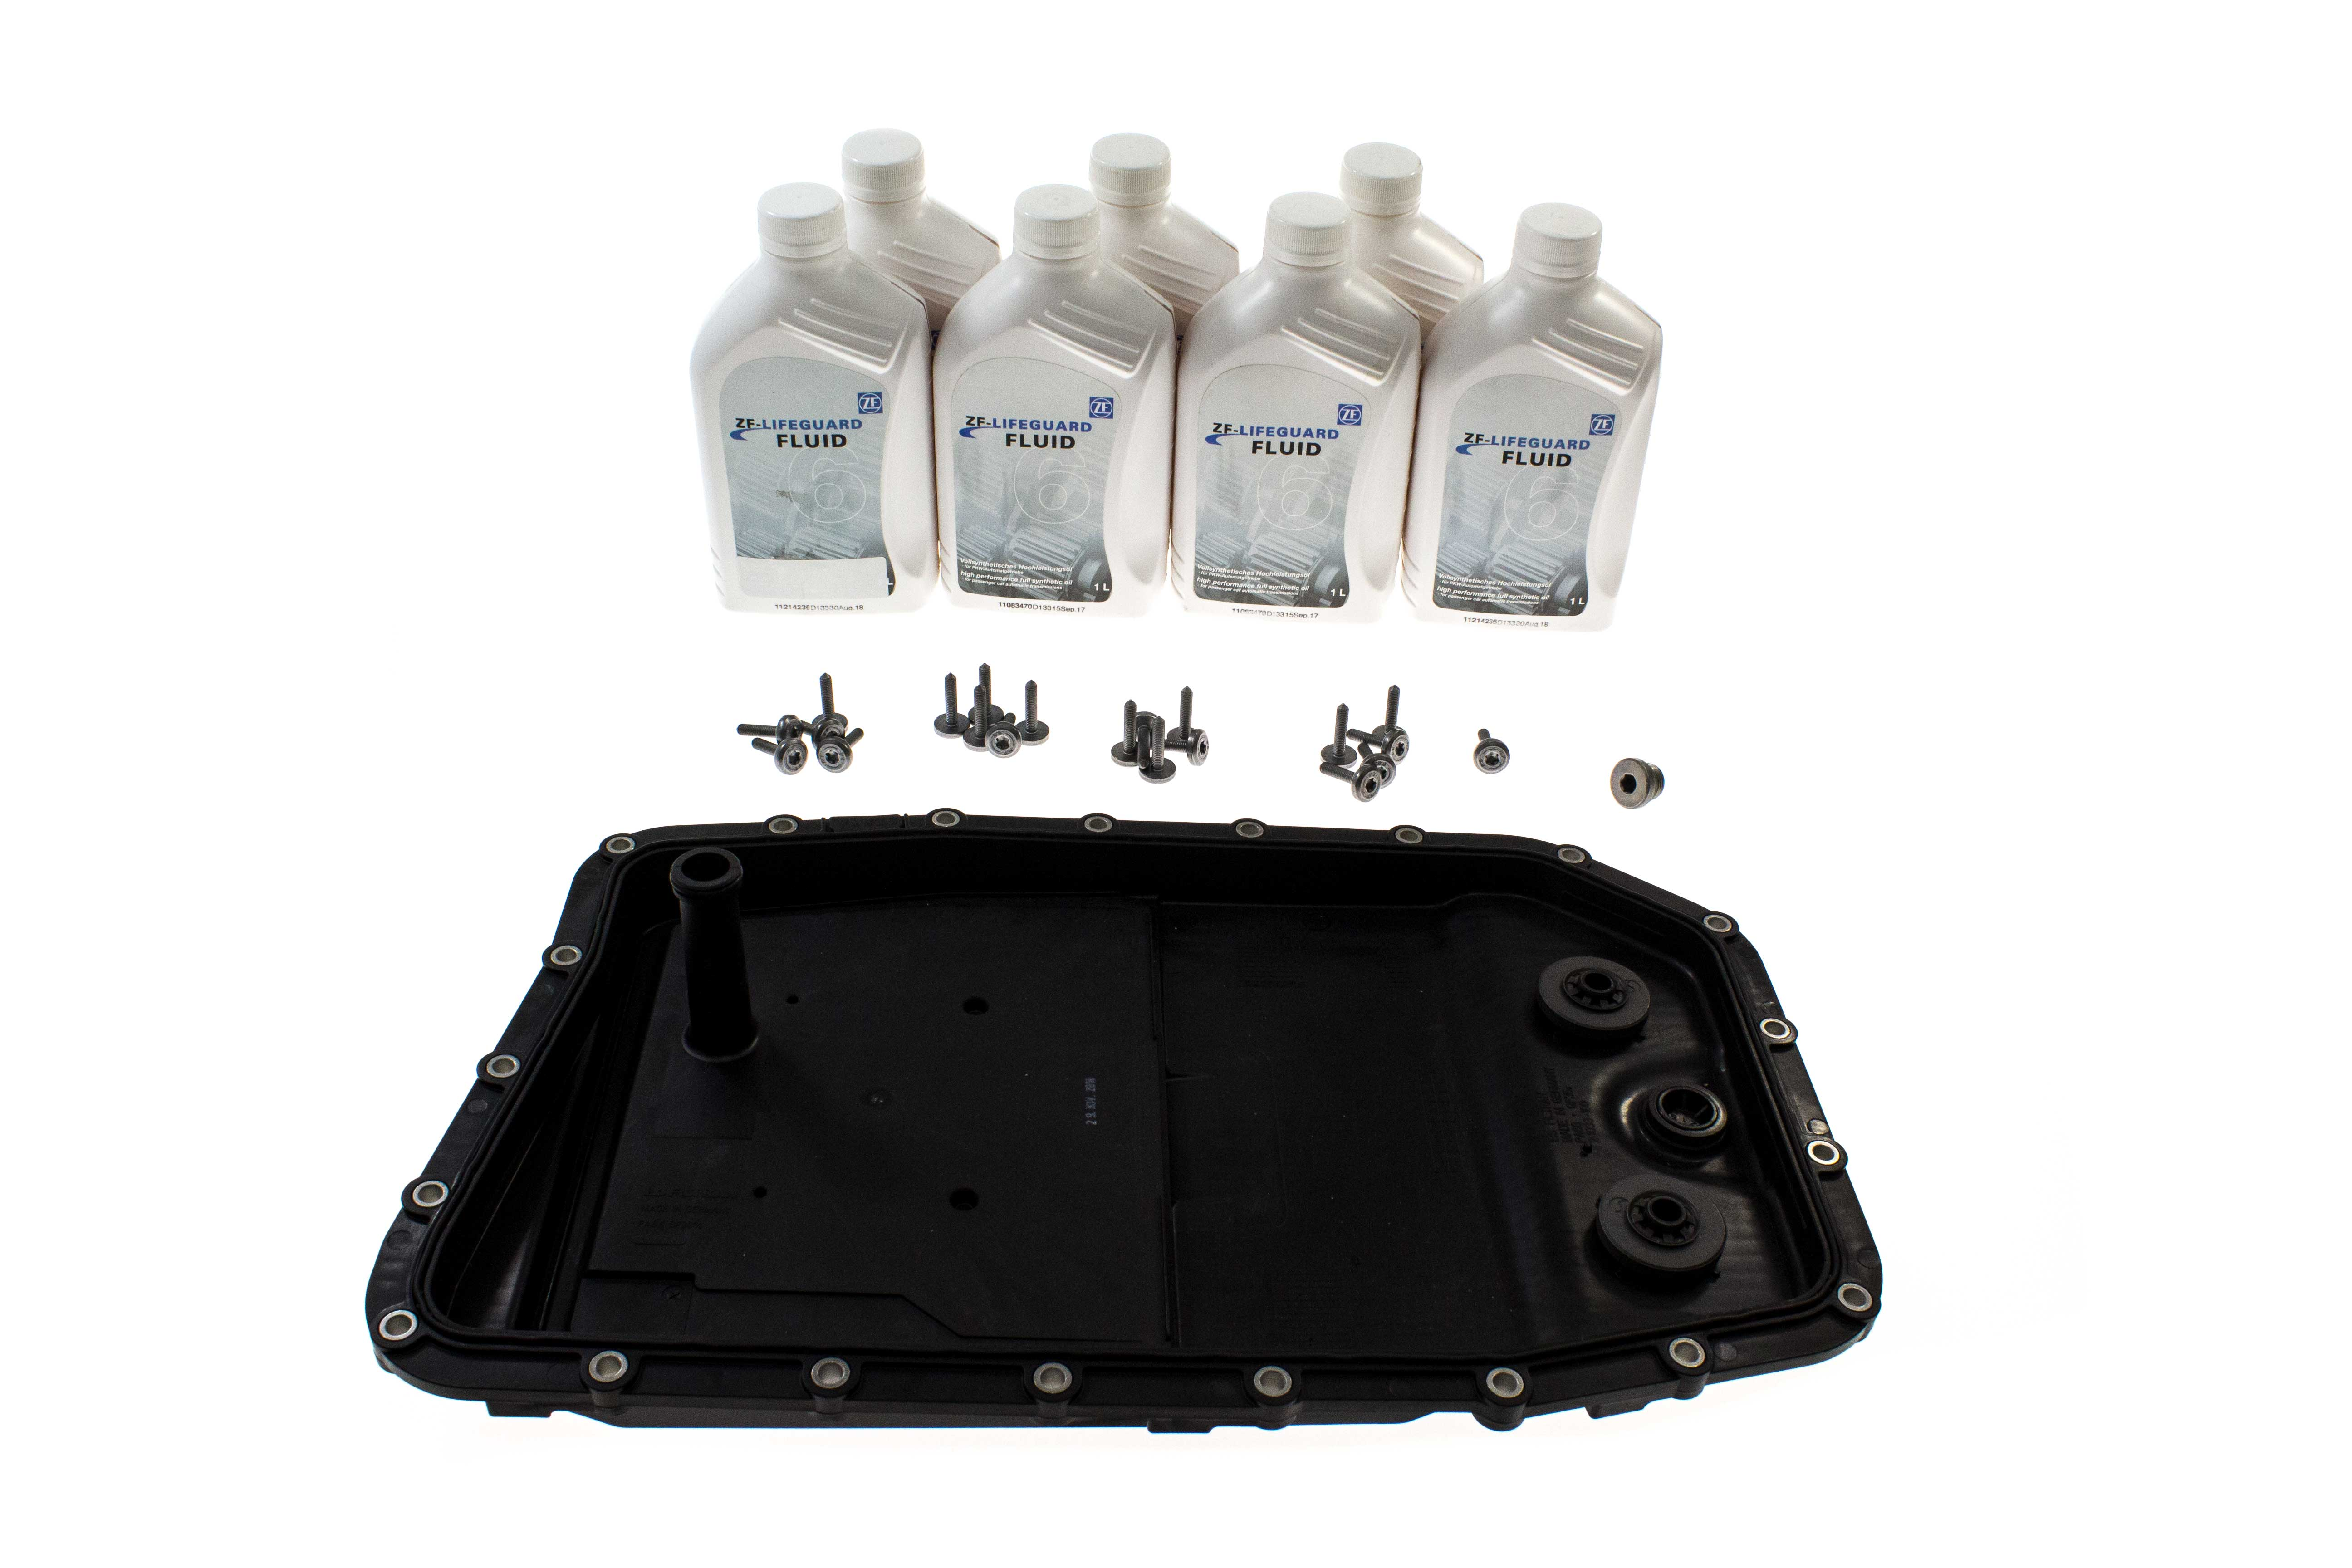 6HP26ZFLTRKIT AAZ Preferred Auto Trans Oil Pan and Filter Kit; A/T Pan with Filter, Pan Bolts, Fill Plug, ATF; KIT